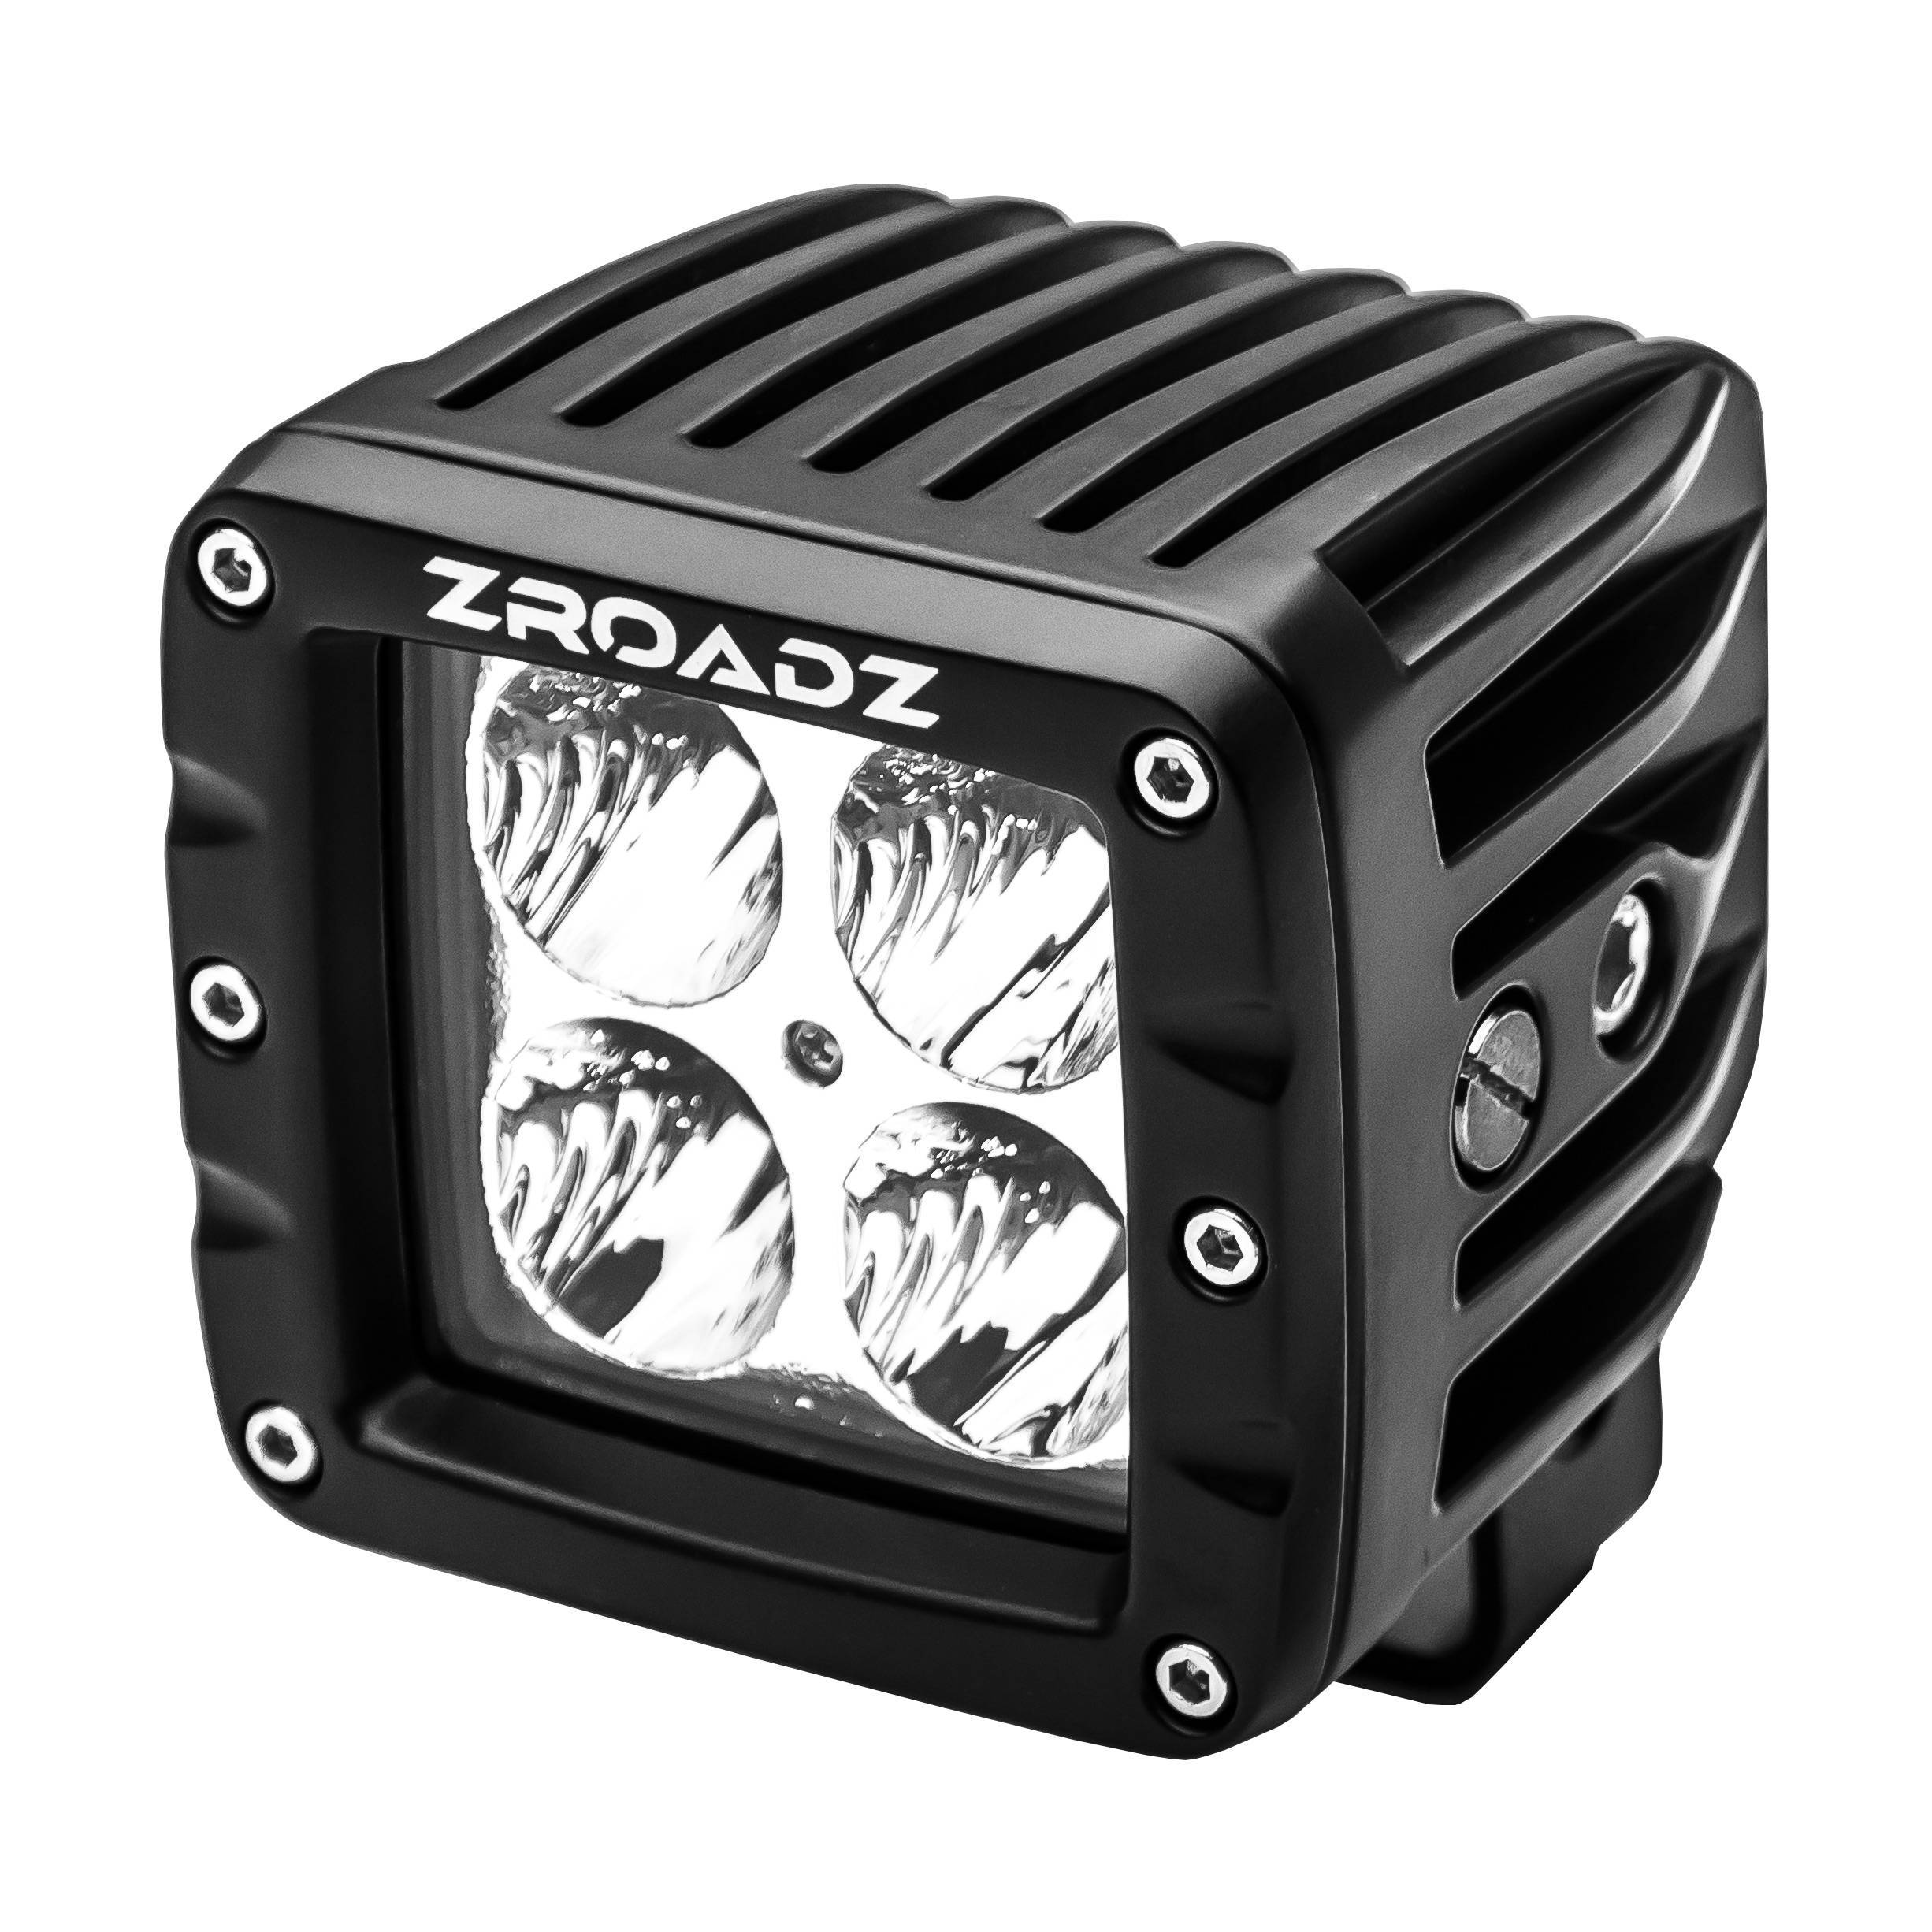 ZROADZ - 3 Inch LED Spot Beam Pod Lights - PN #Z30BC14W20S